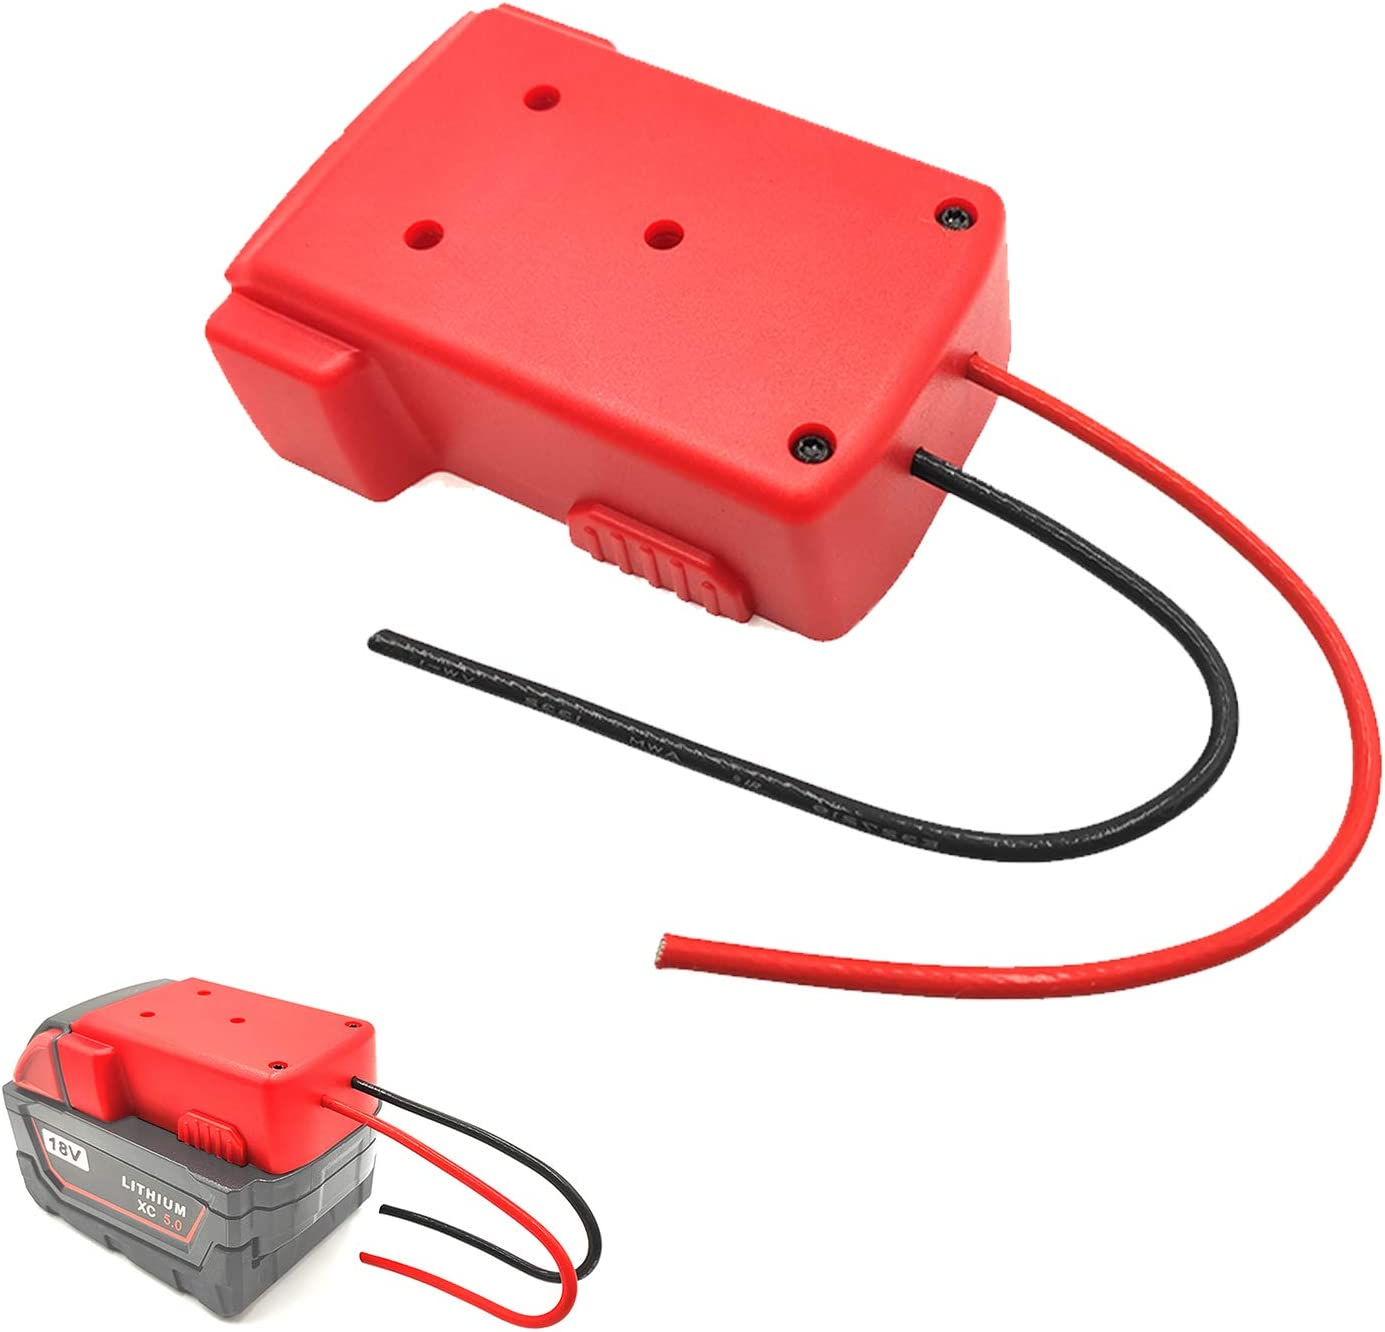 Power Wheel Adapter Max 46% OFF for Milwaukee Wheels M18 Quality inspection Battery18v Ad